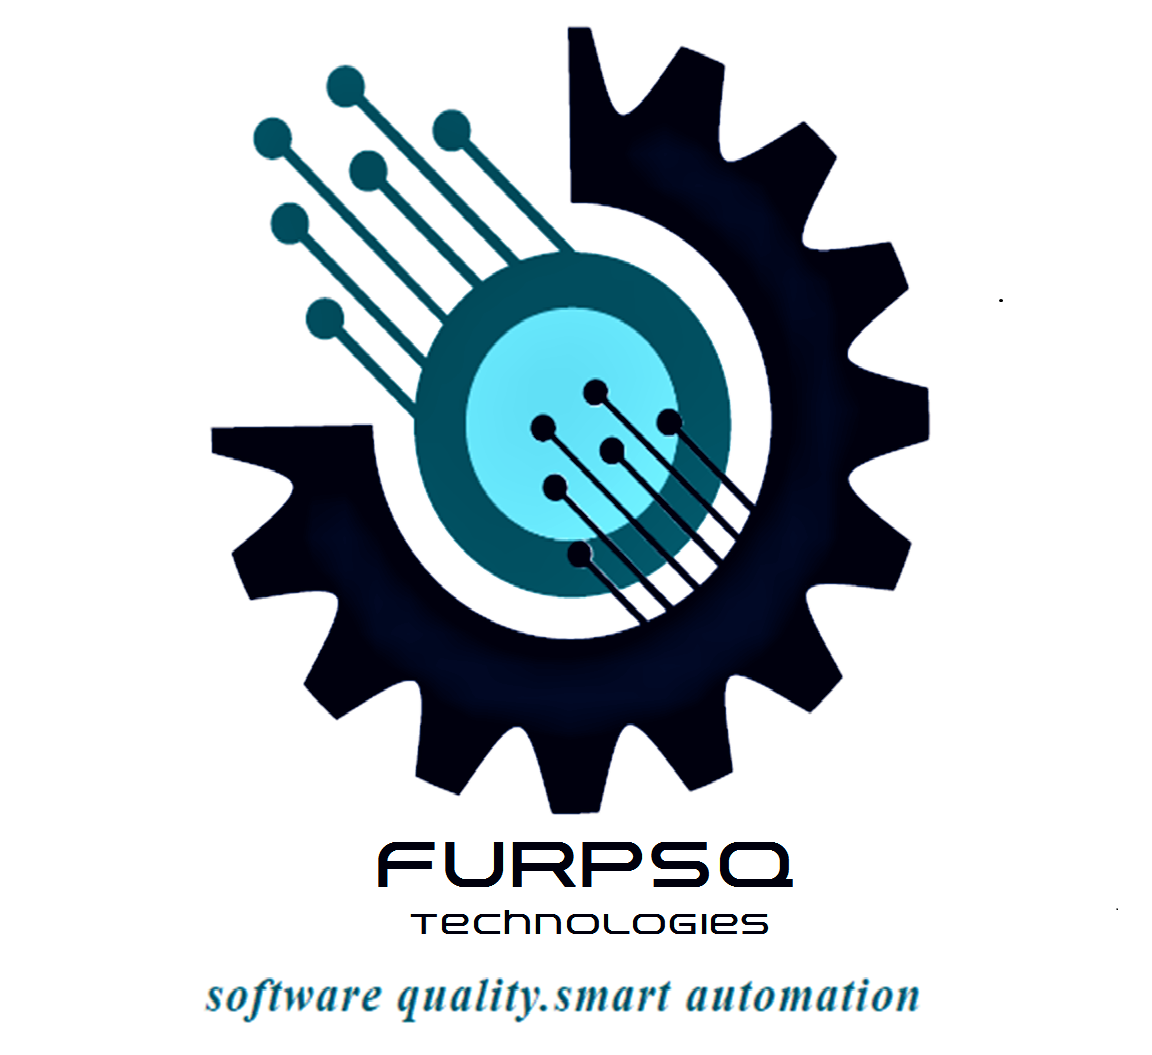 FURPSQ Technologies – software quality smart automation